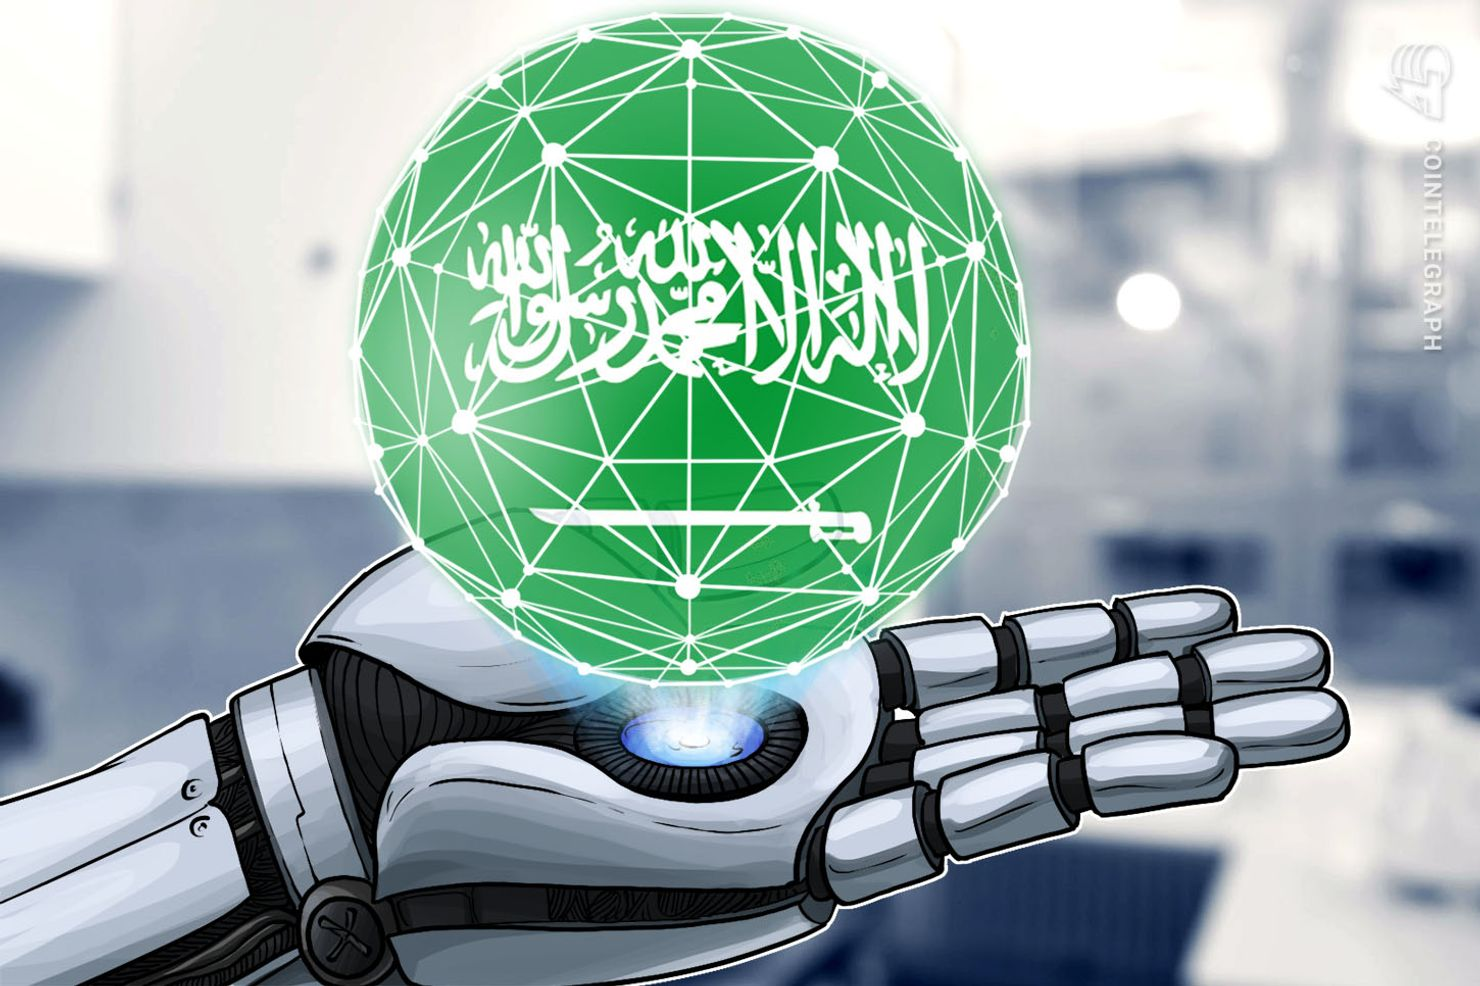 Saudi Arabia Completes IBM TradeLens Pilot for Cross-Border Blockchain Trade